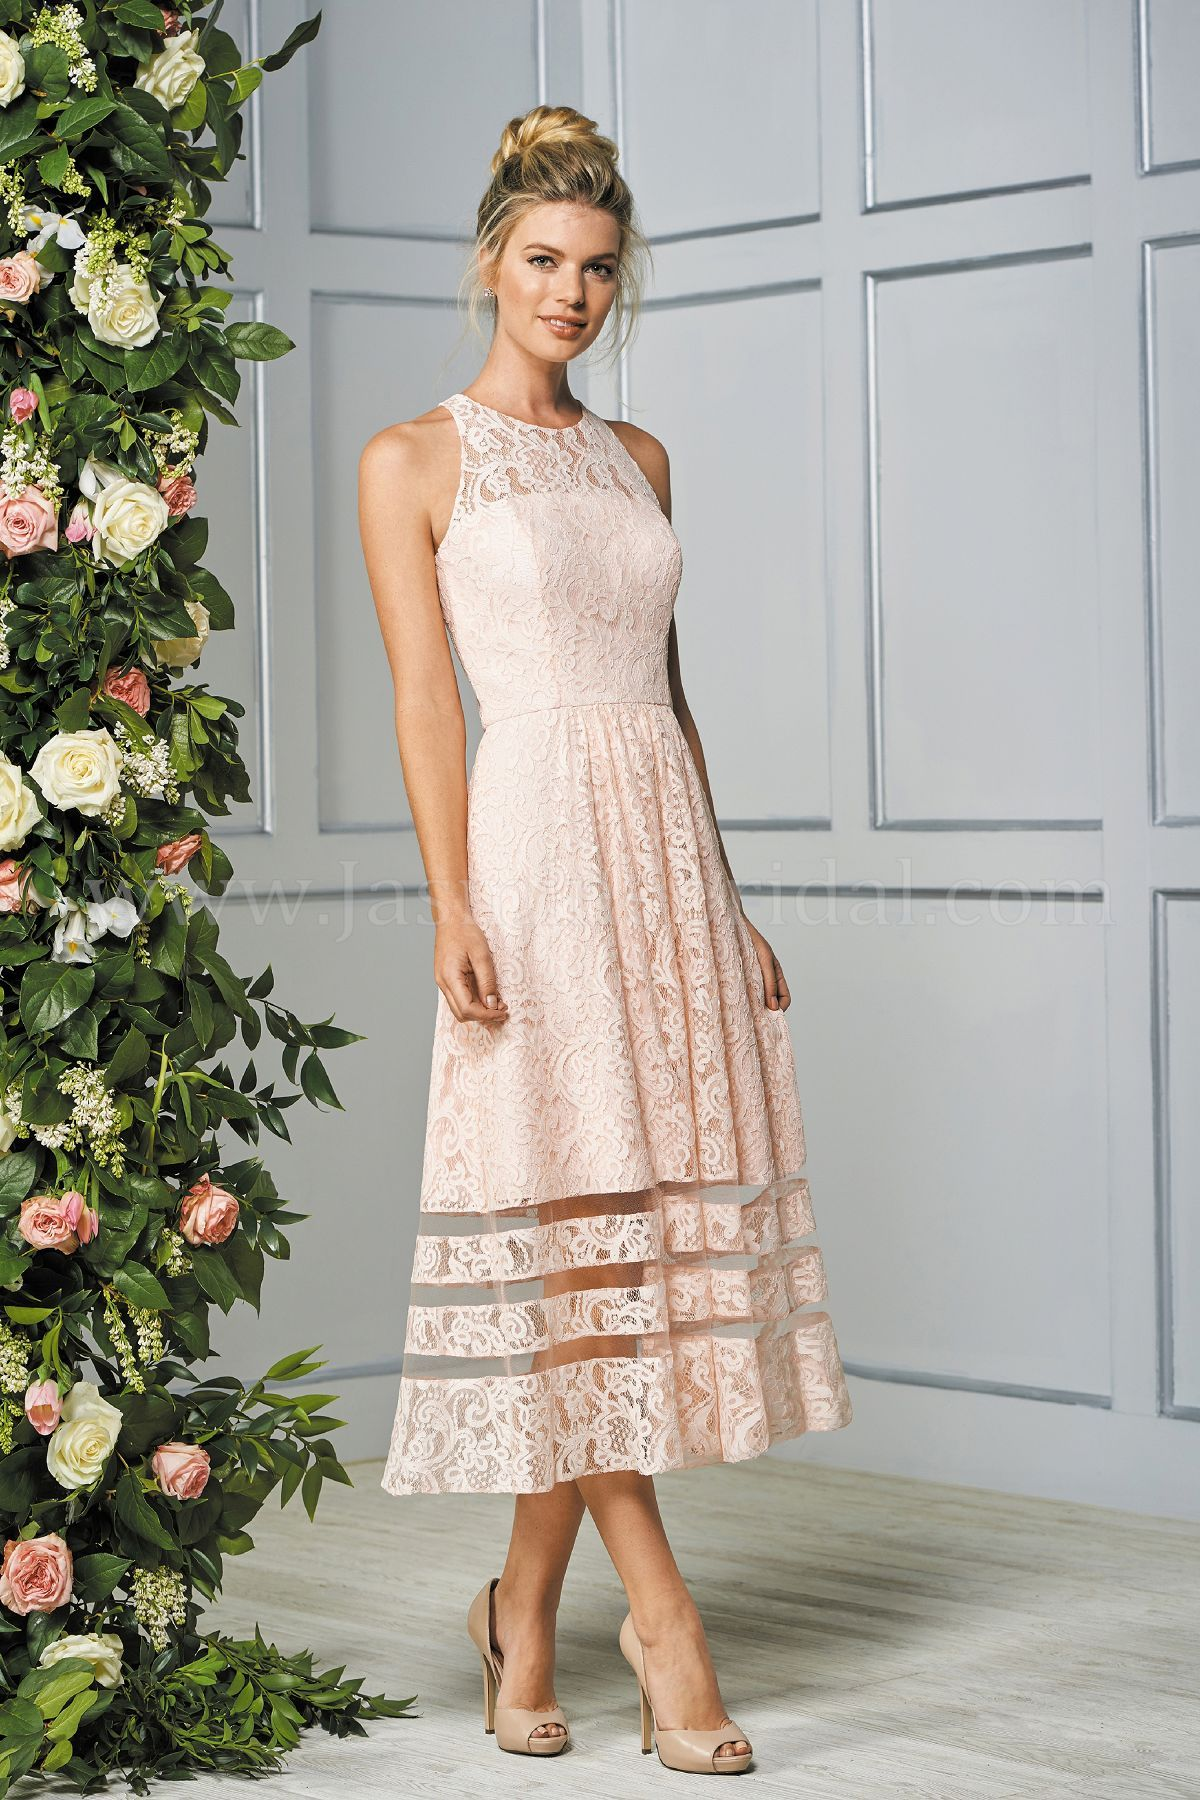 Pink lace wedding dress  Jasmine Bridal  B Style B in New Shell Pink  Lace  Tea